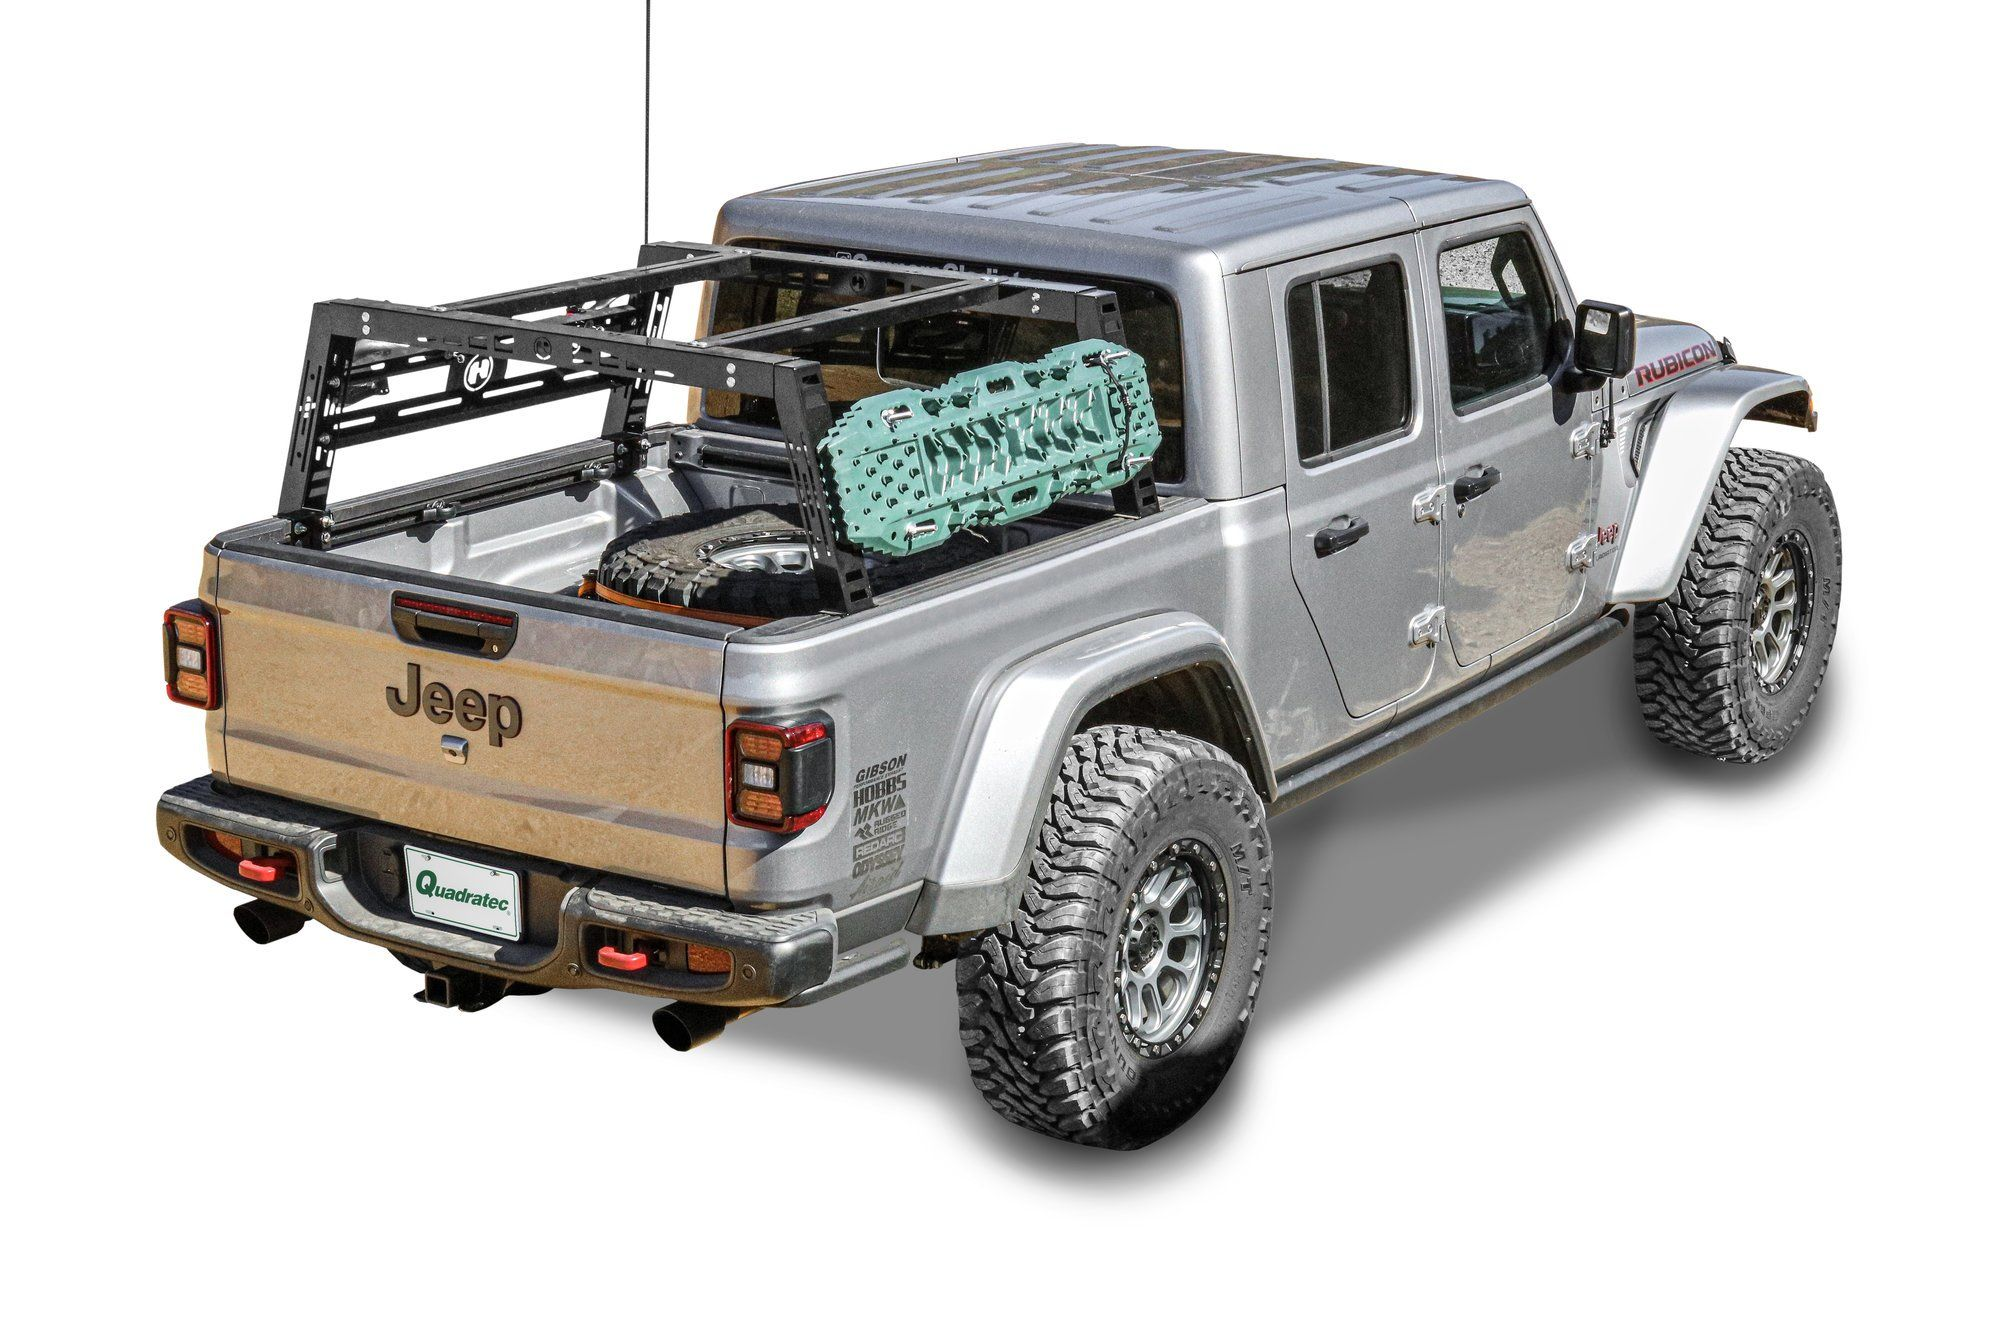 HOBBS 6700020 Freedom Bed Rack for 2020 Jeep Gladiator JT